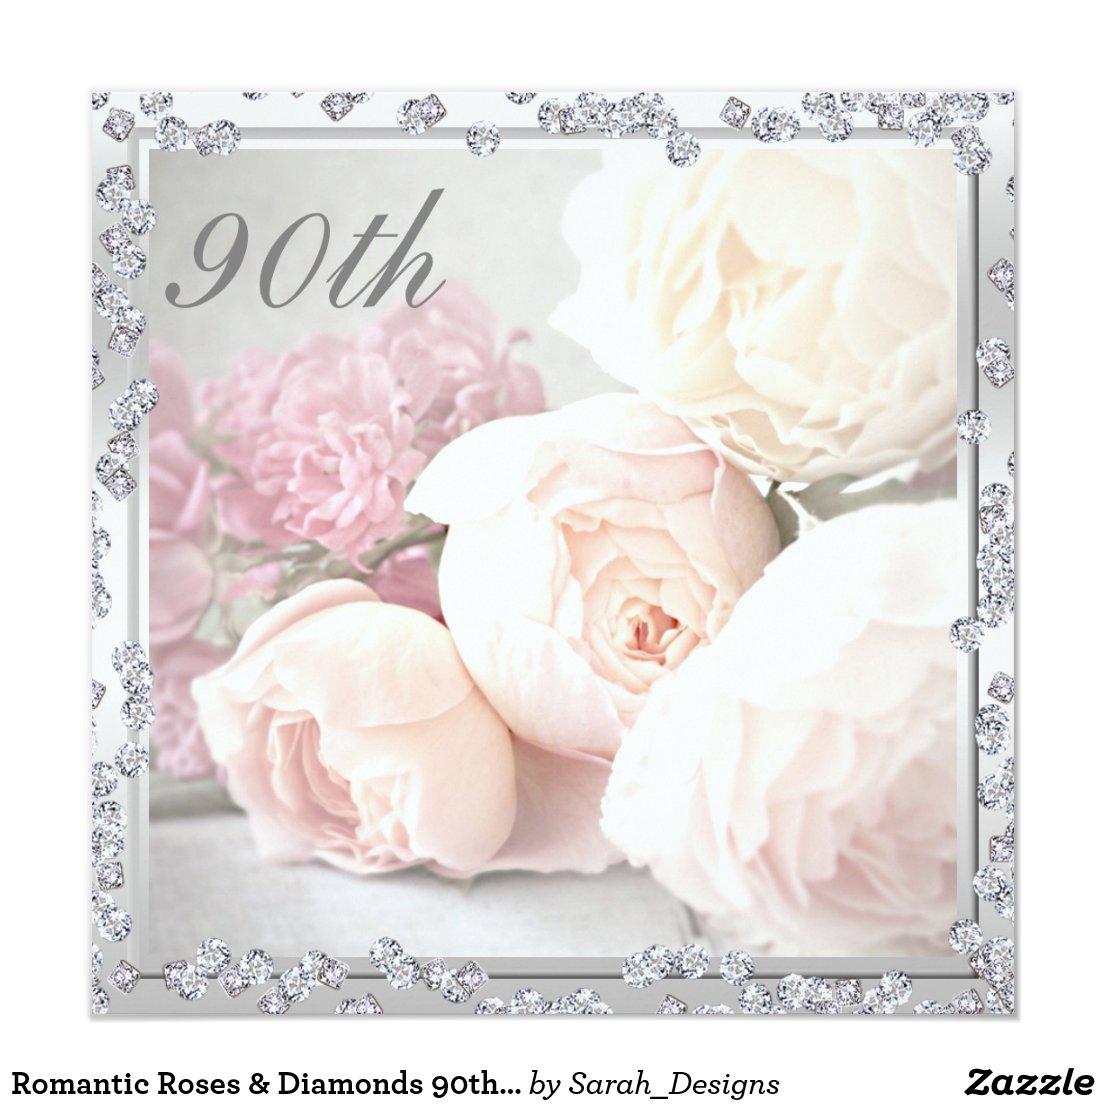 Romantic Roses & Diamonds 90th Birthday Party